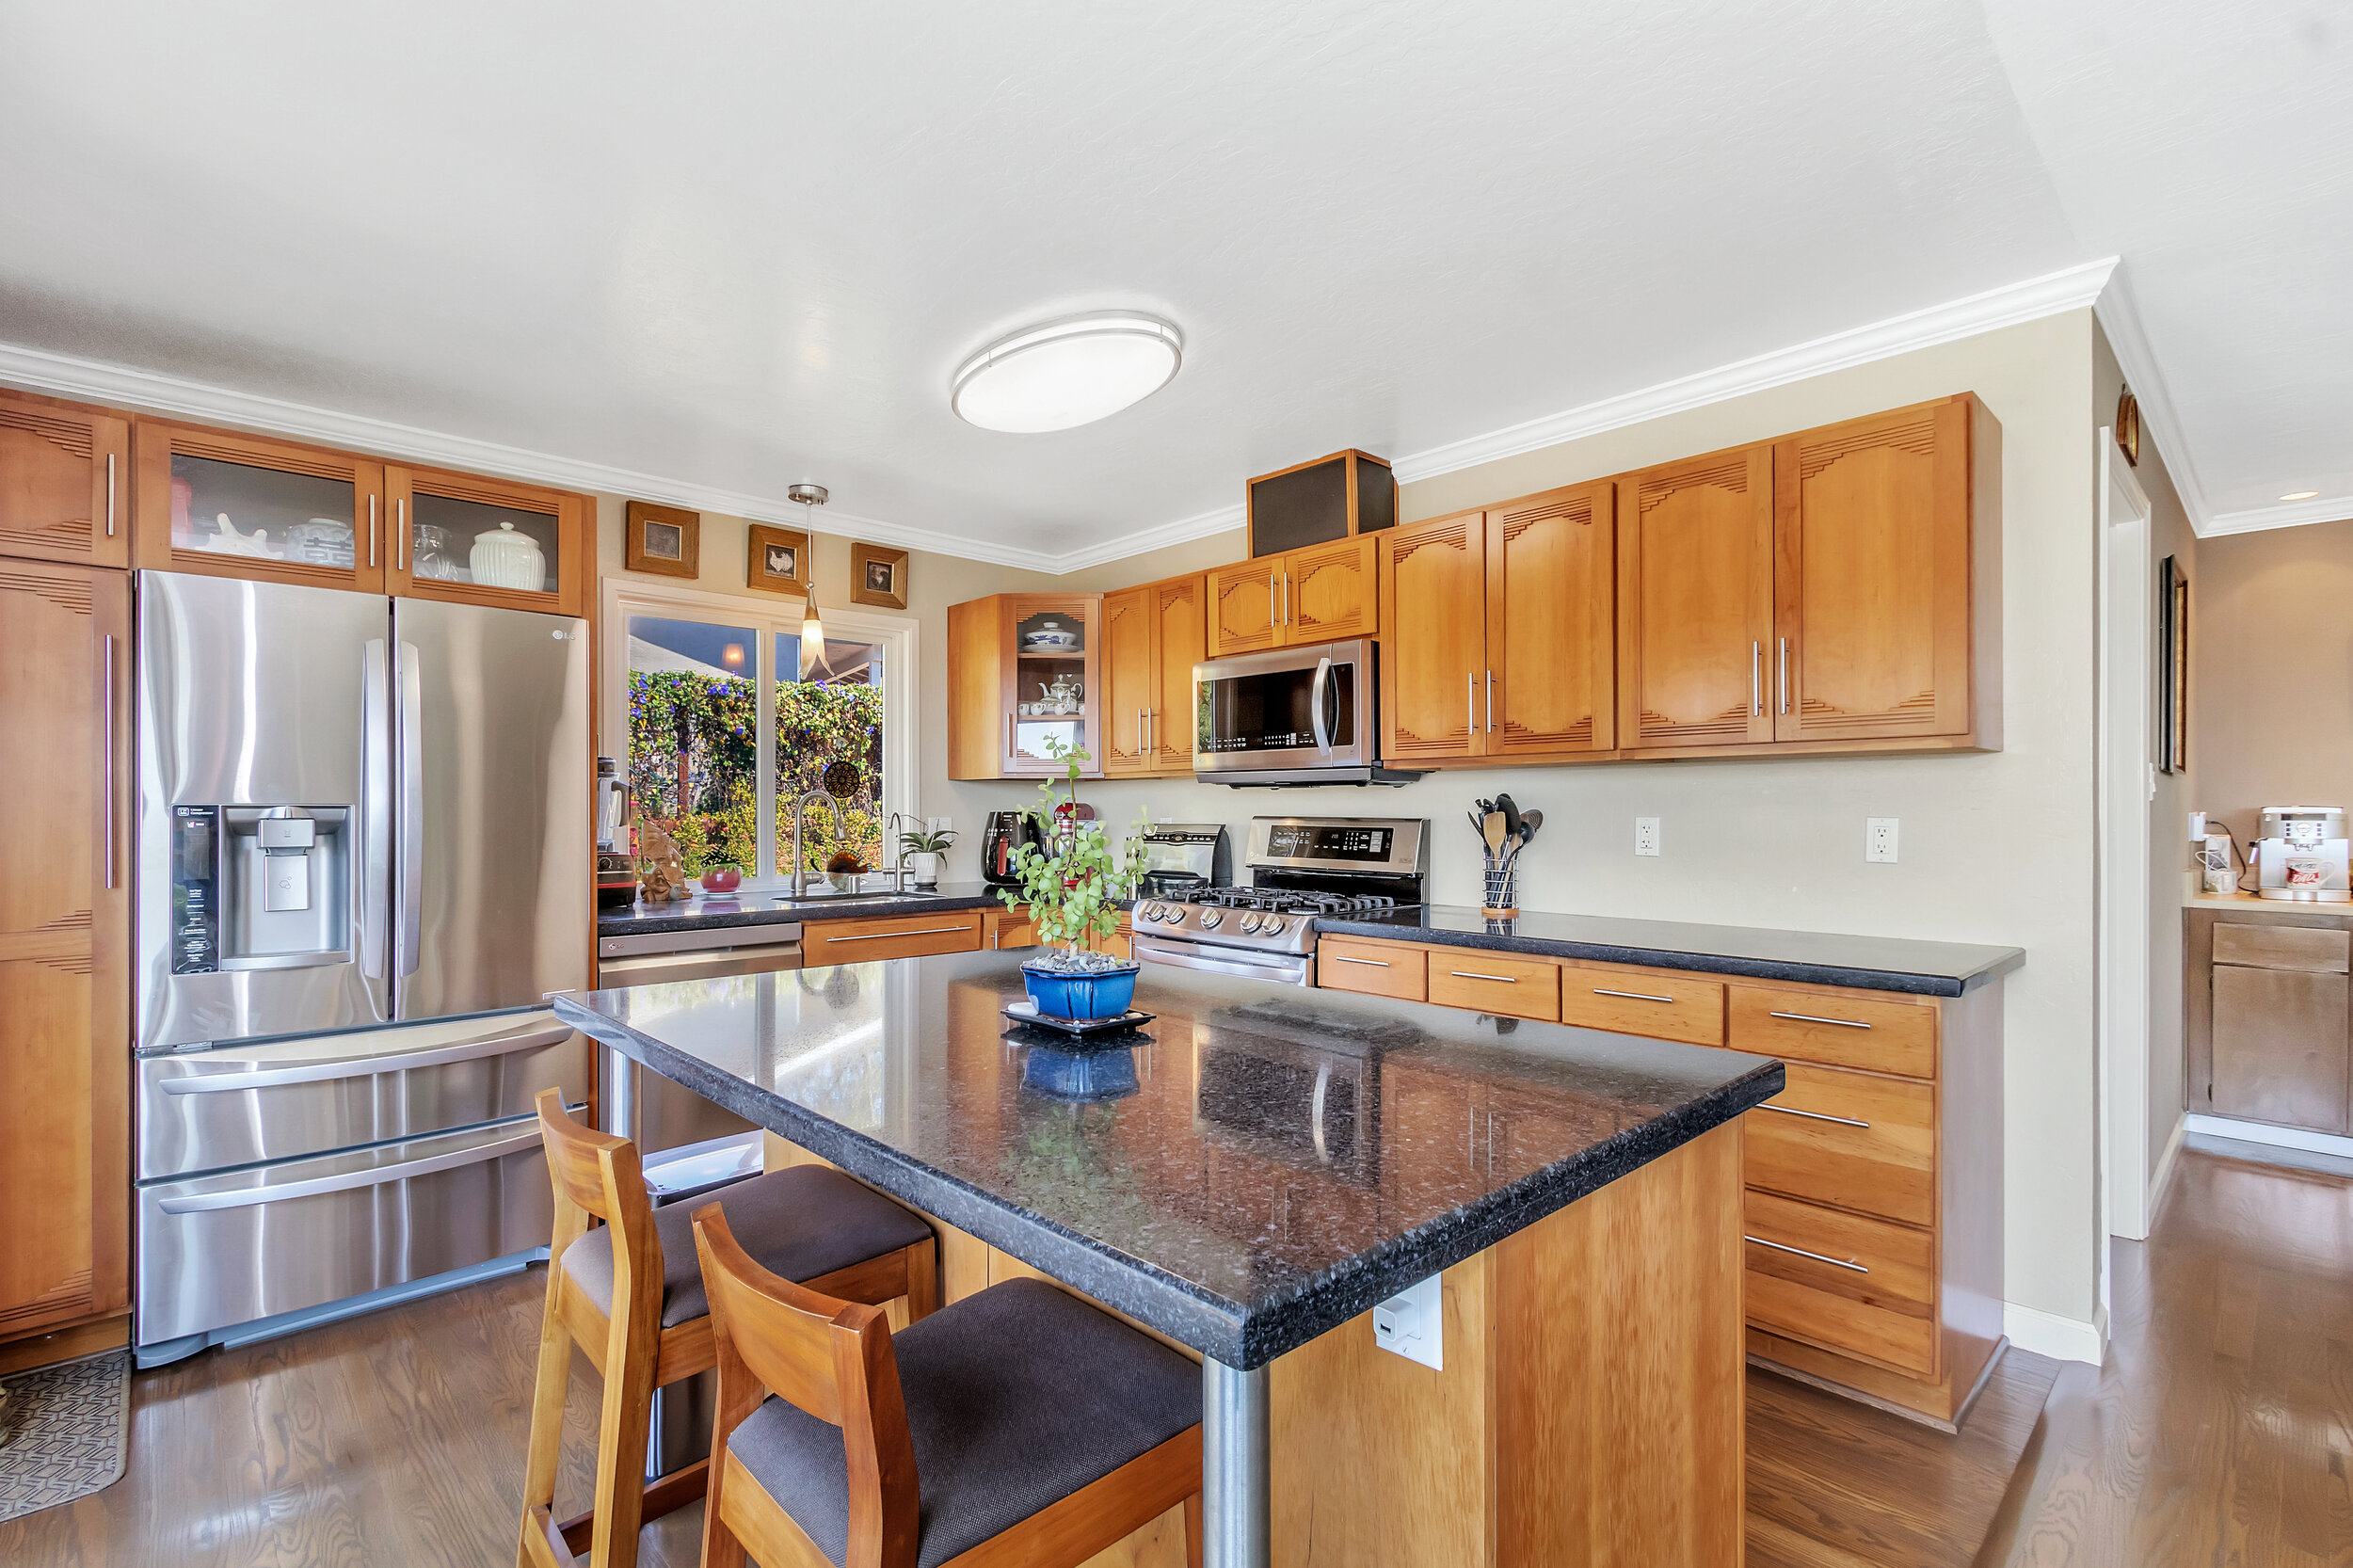 Recently remodeled kitchen features Stainless Steel LG appliances, black Silestone counters and Cherrywood cabinets.